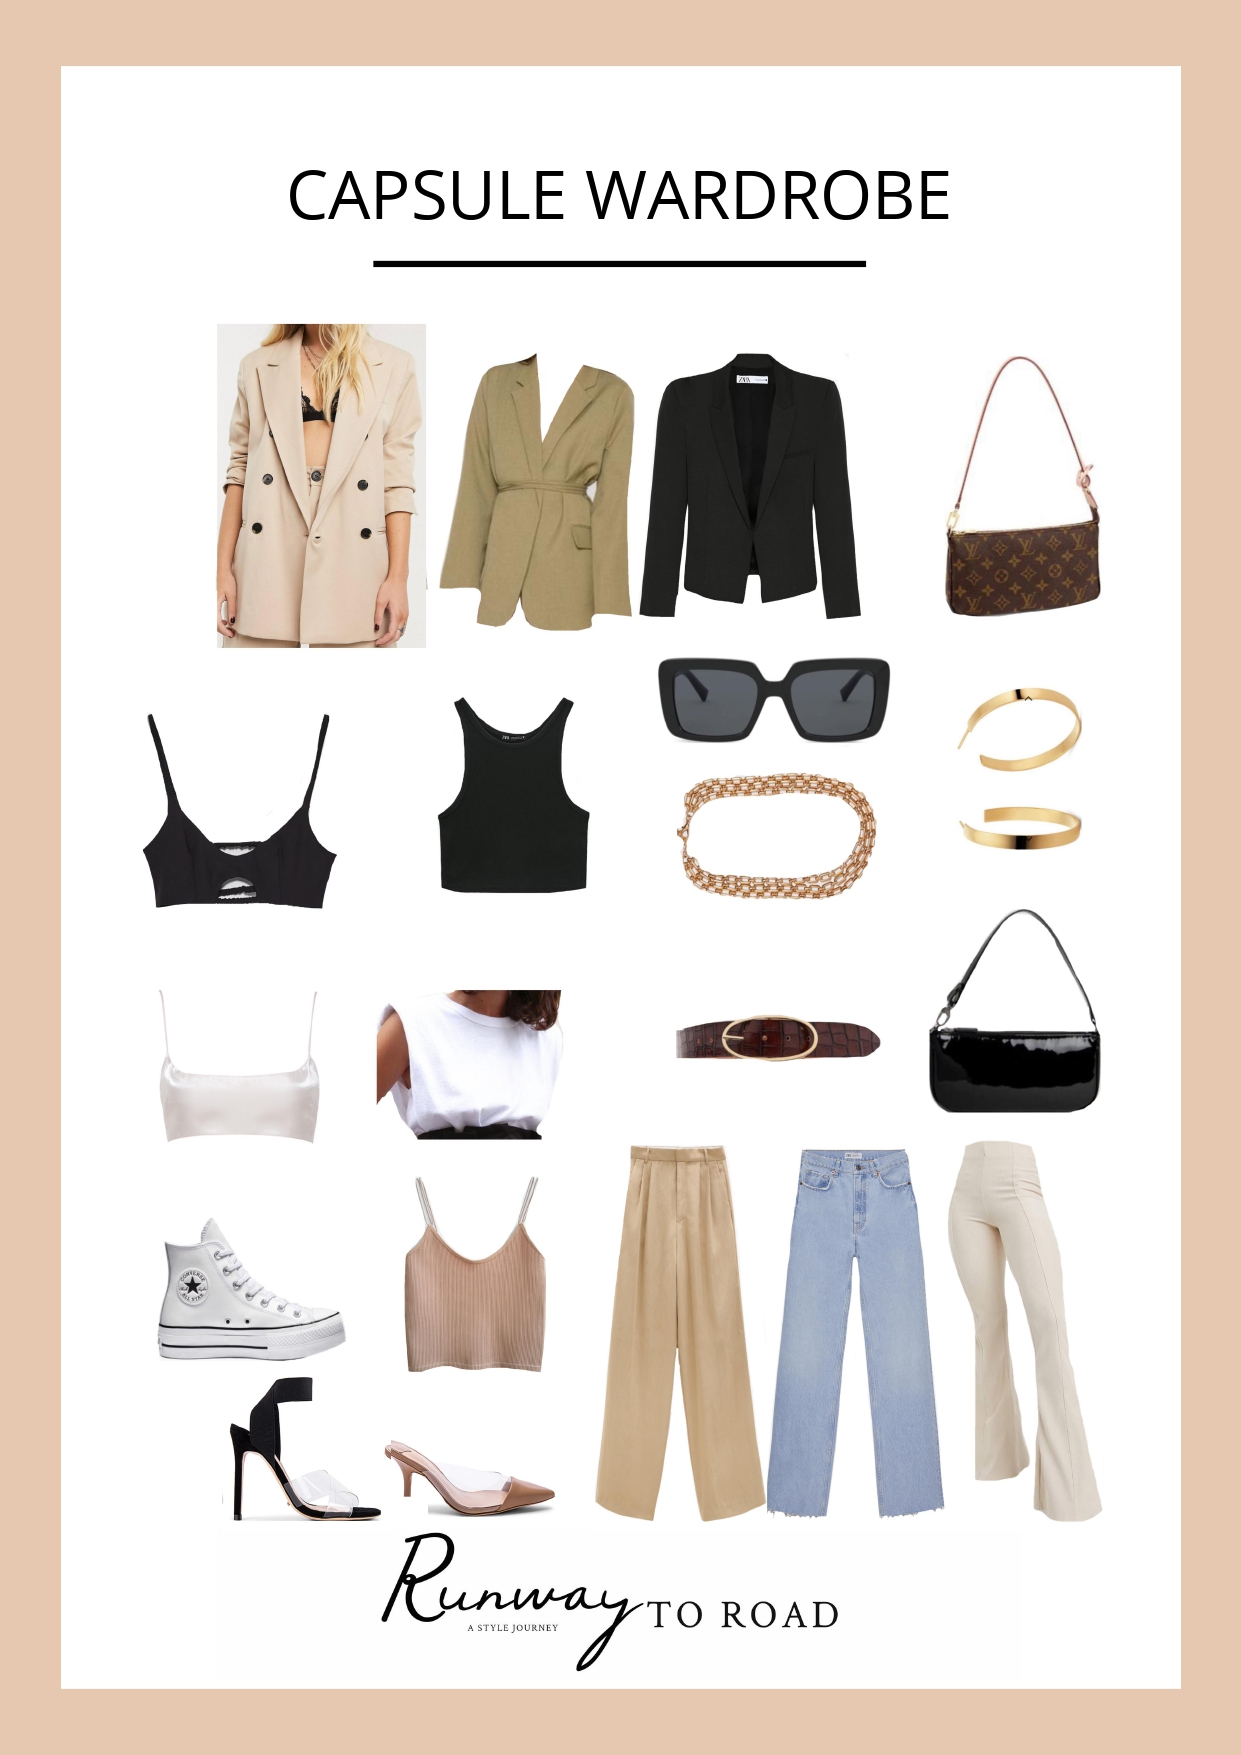 Runway_To_Road_Capsule_Wardrobe_8